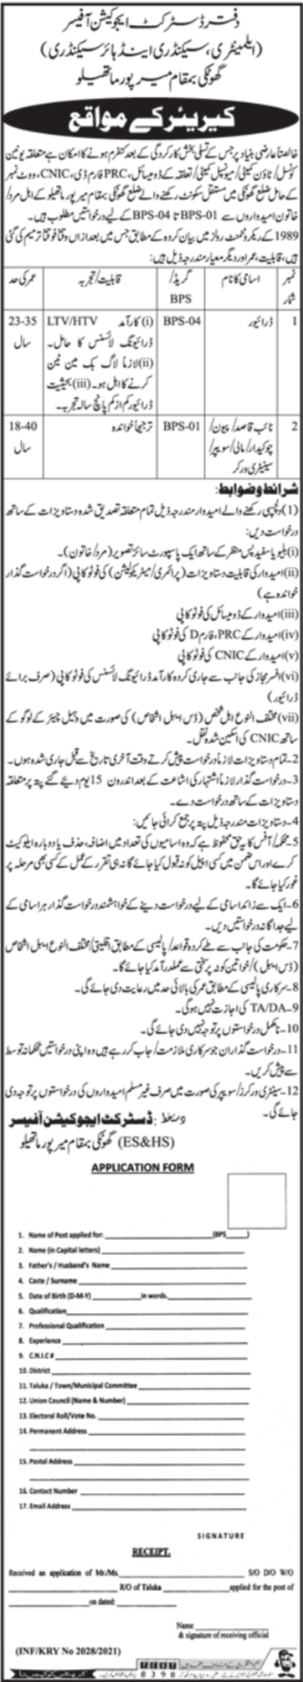 District Education Office Jobs 2021 For Miscellaneous Staff